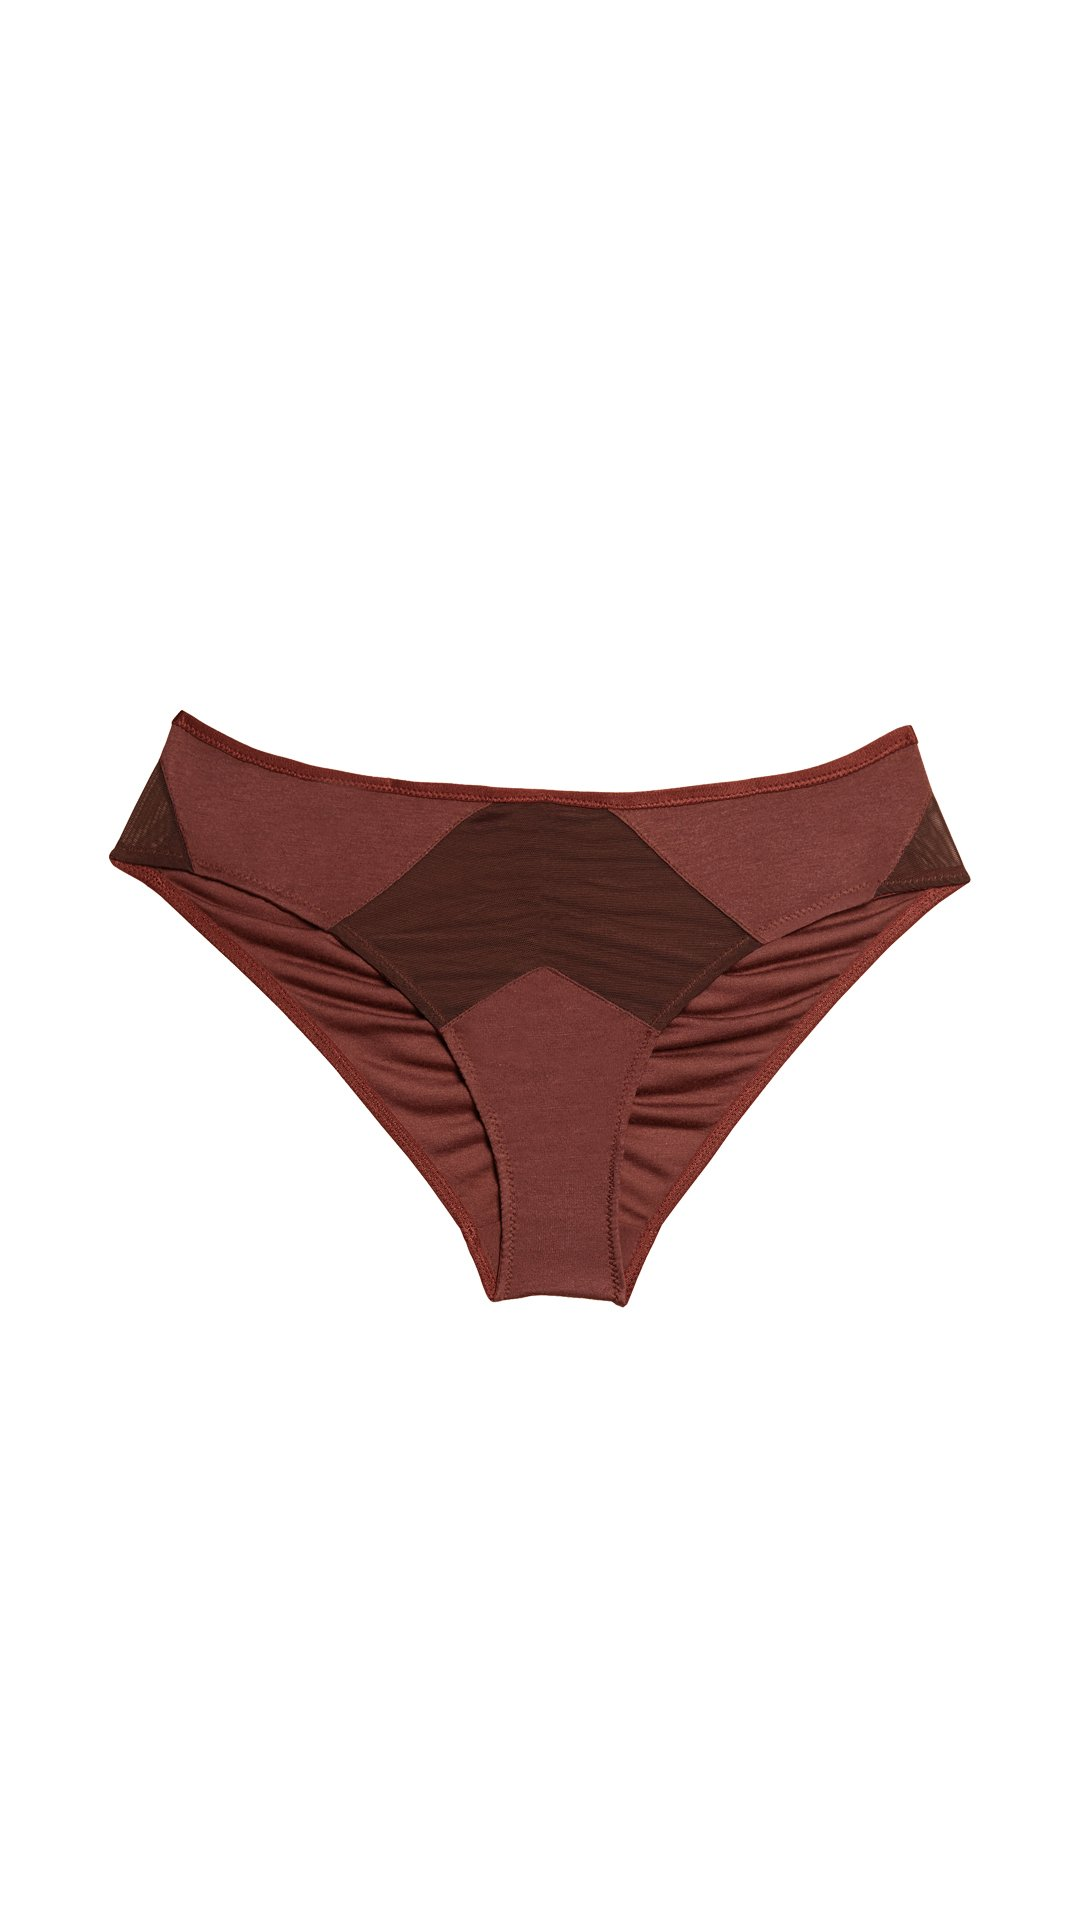 The Best Cotton Underwear For Women 91e0d7472